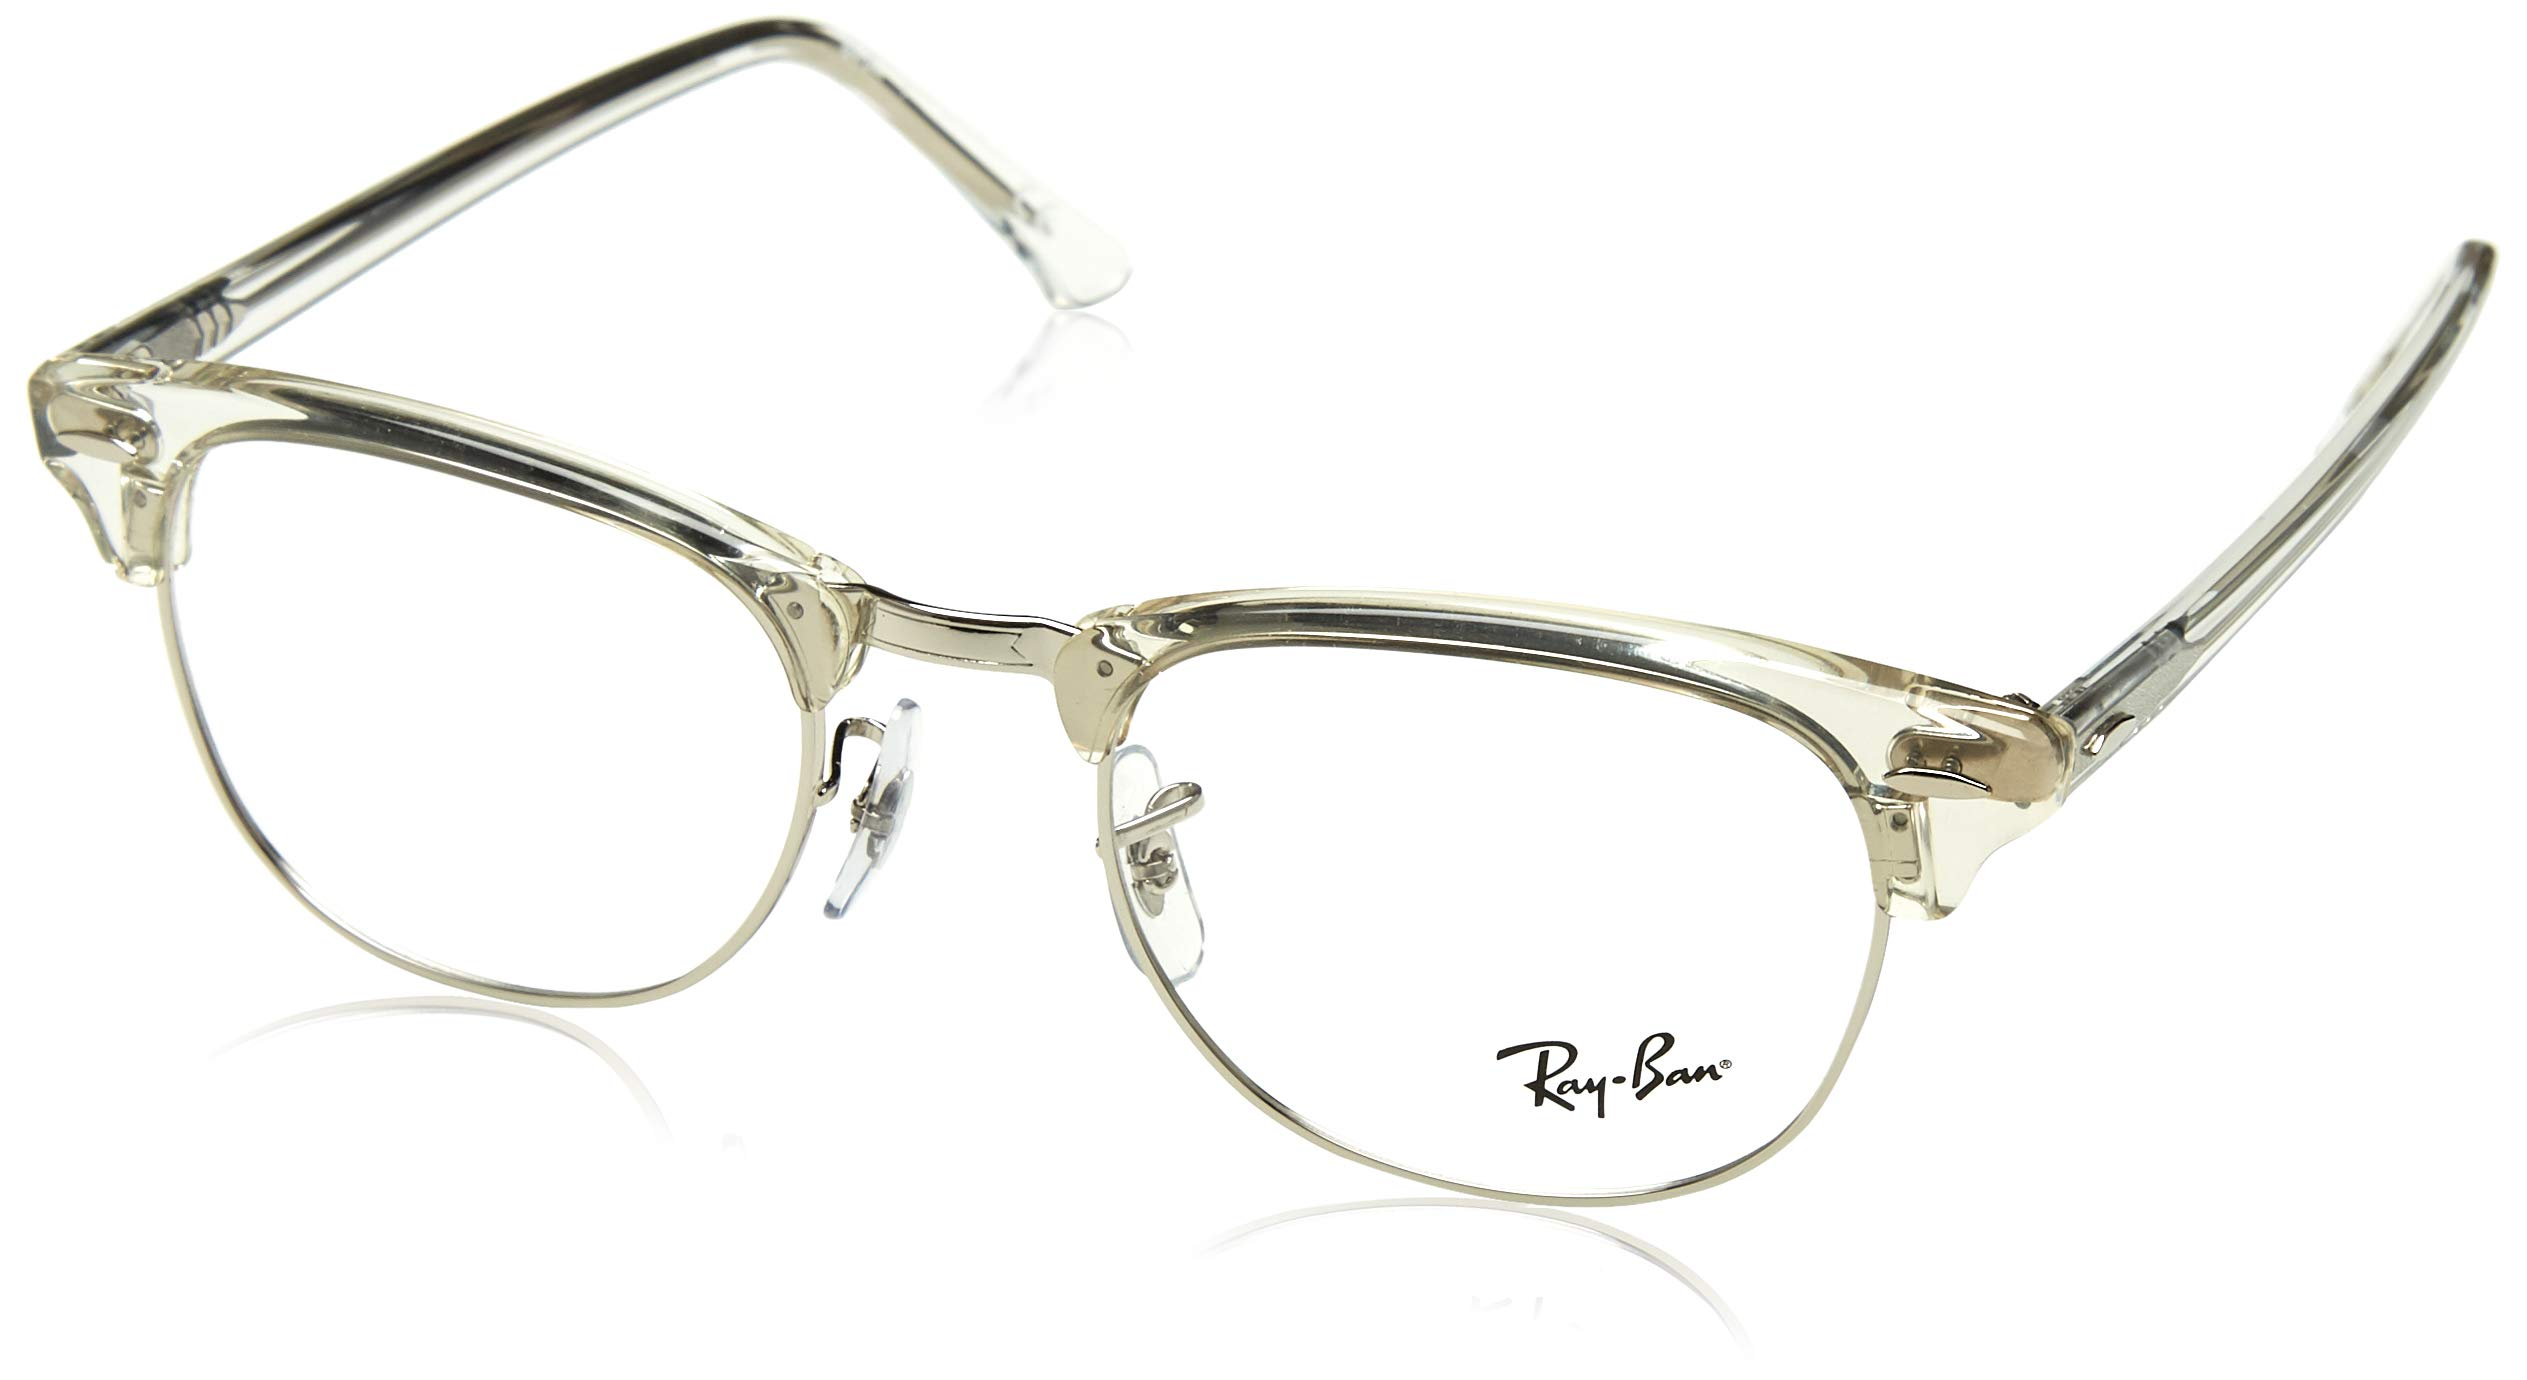 RAY-BAN RX5154 Clubmaster Square Eyeglass Frames, White Transparent/Demo Lens, 49 mm by Ray-Ban